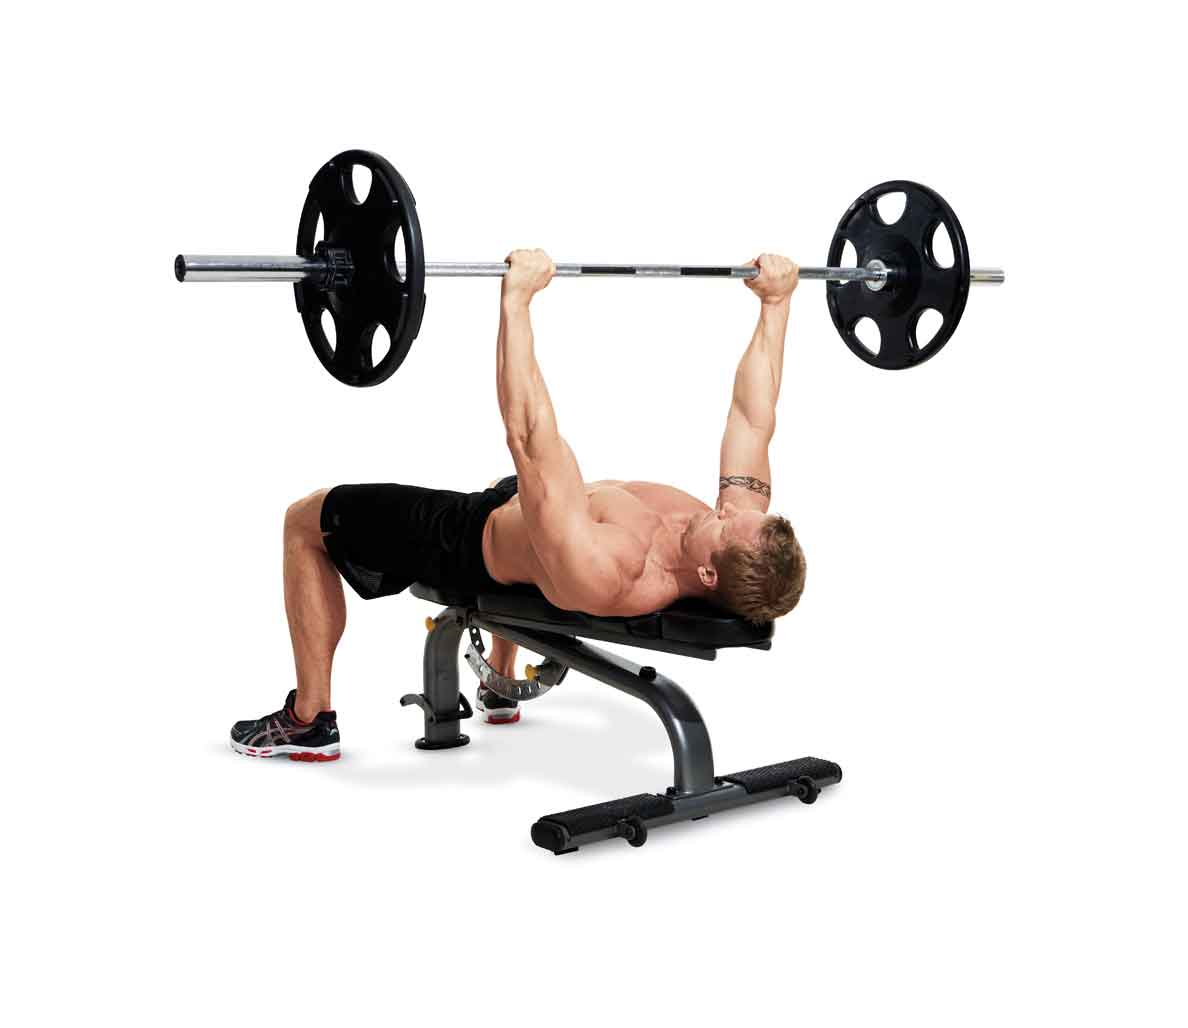 Workout Mistakes: The Bench Press